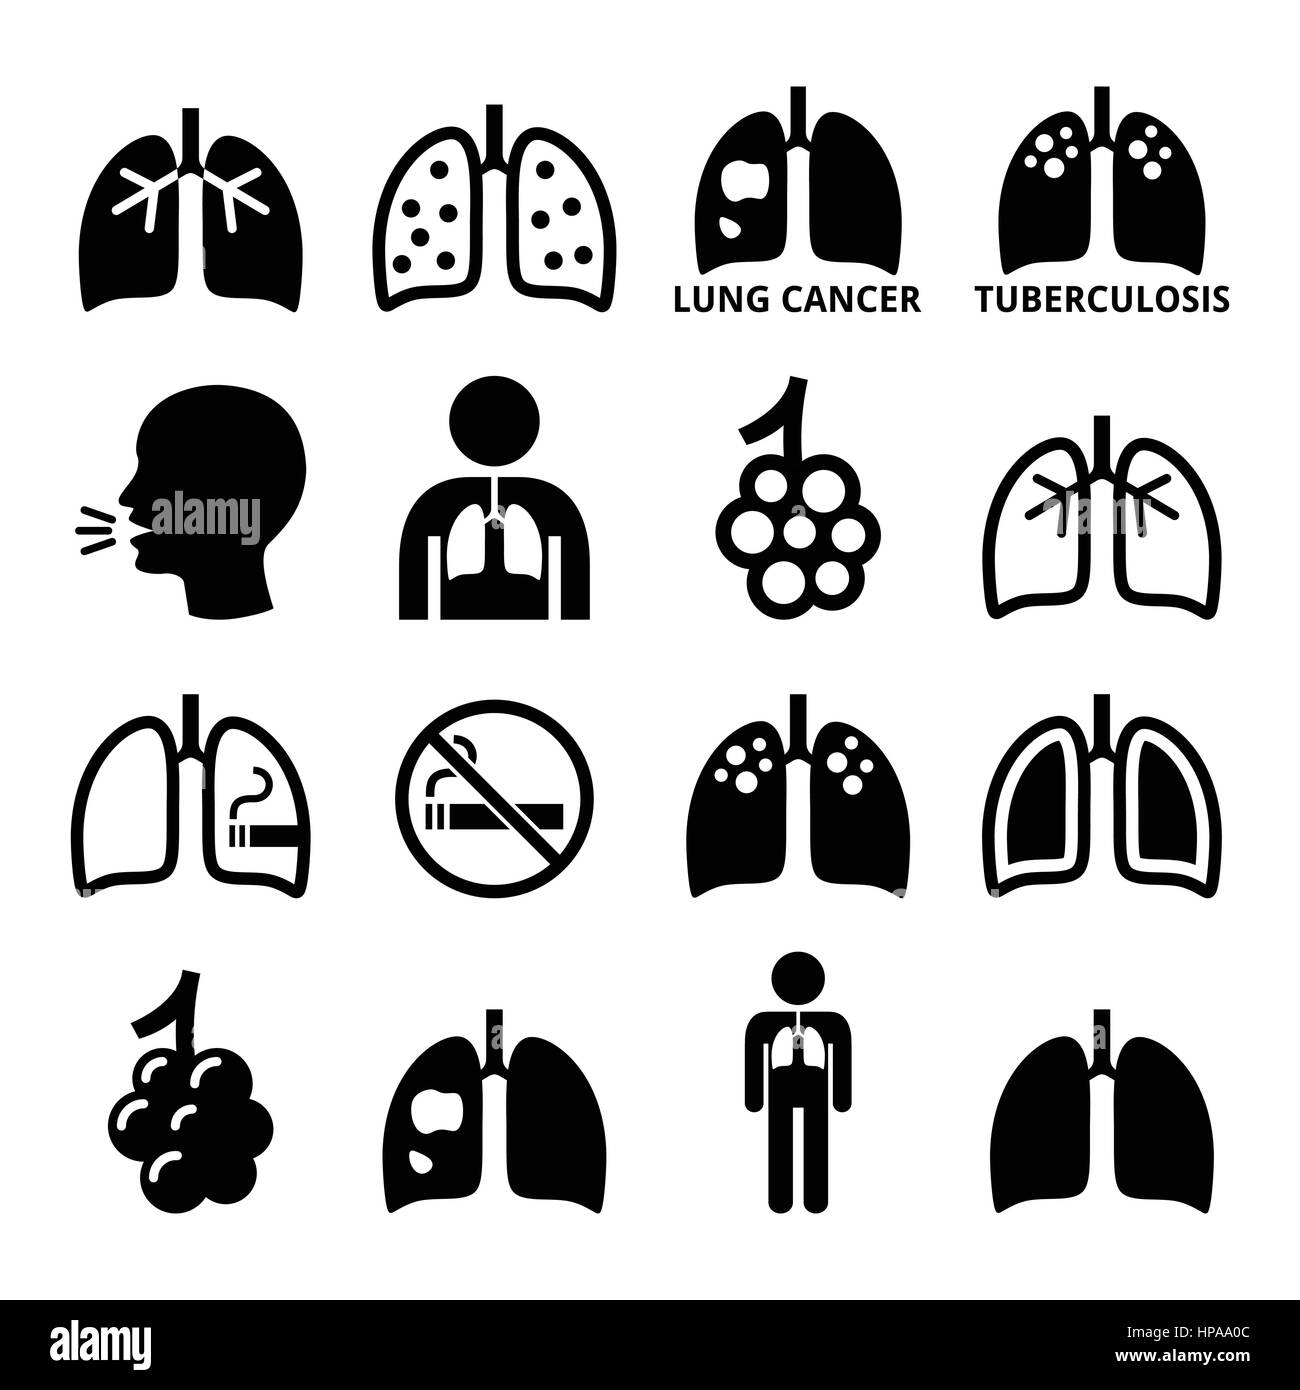 Lungs, lung disease icons set - Stock Image